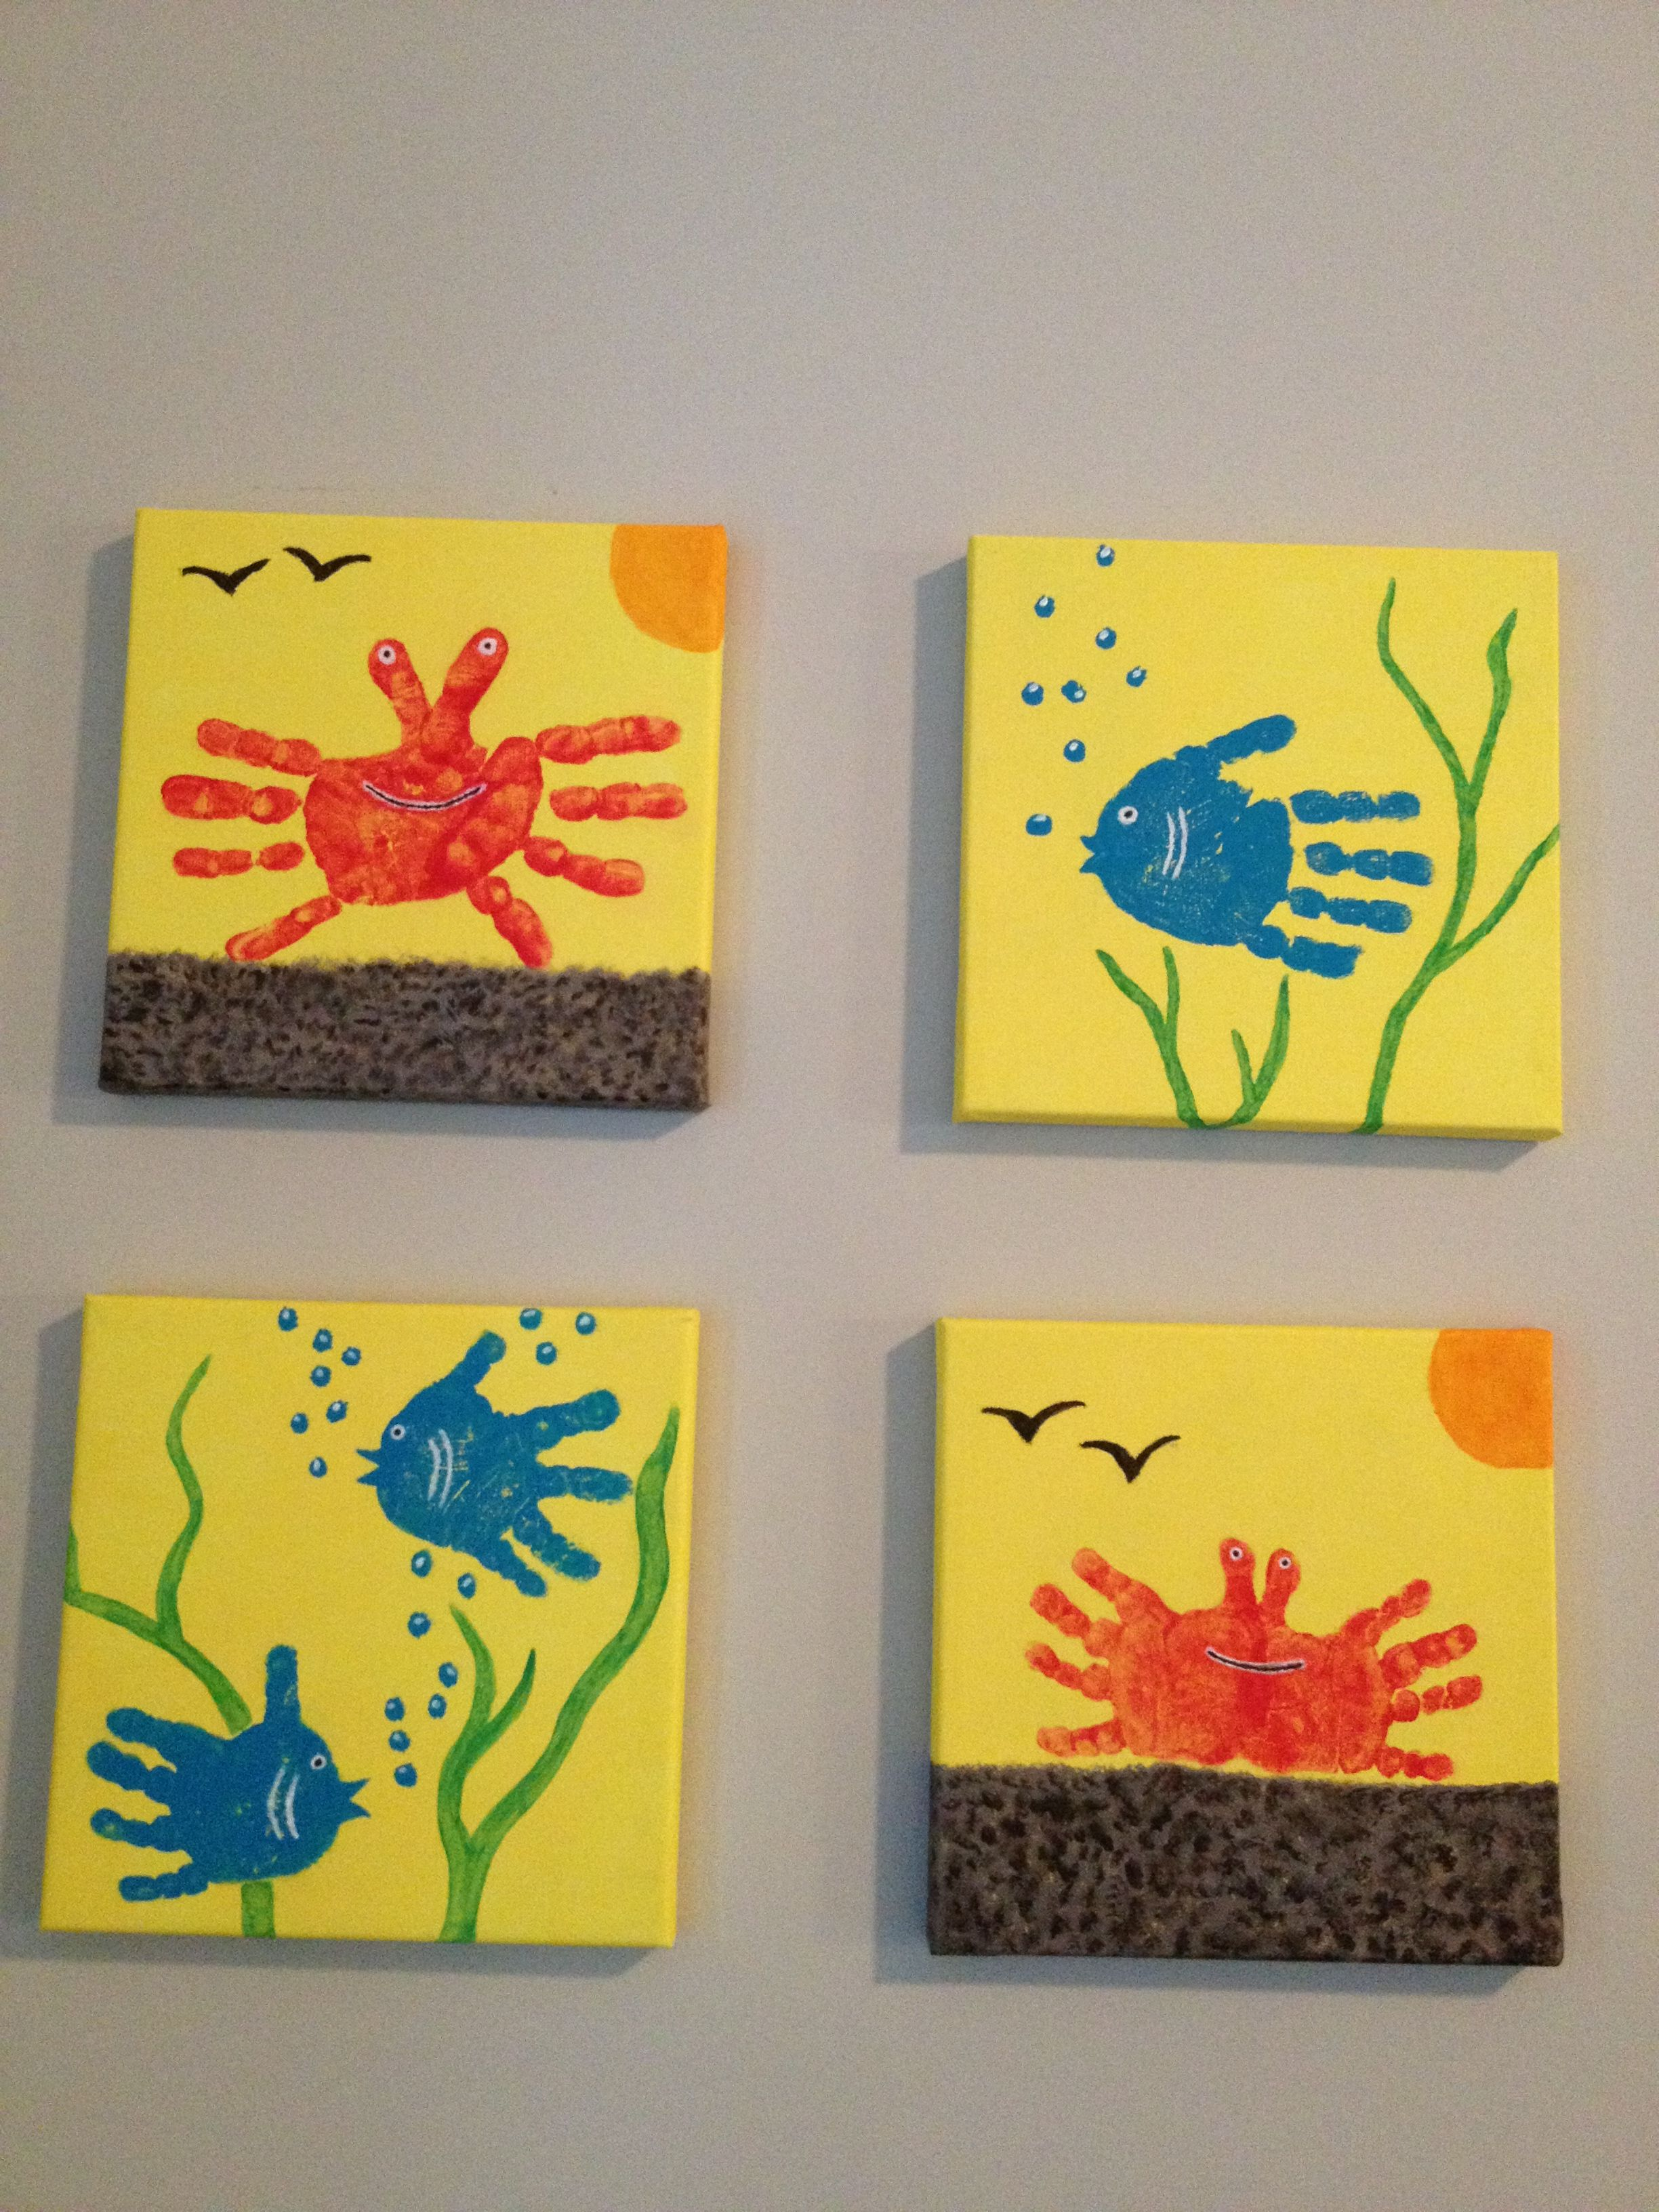 Handprint Canvas Art For The Kids Playroom Make It Match Color Of Your Room